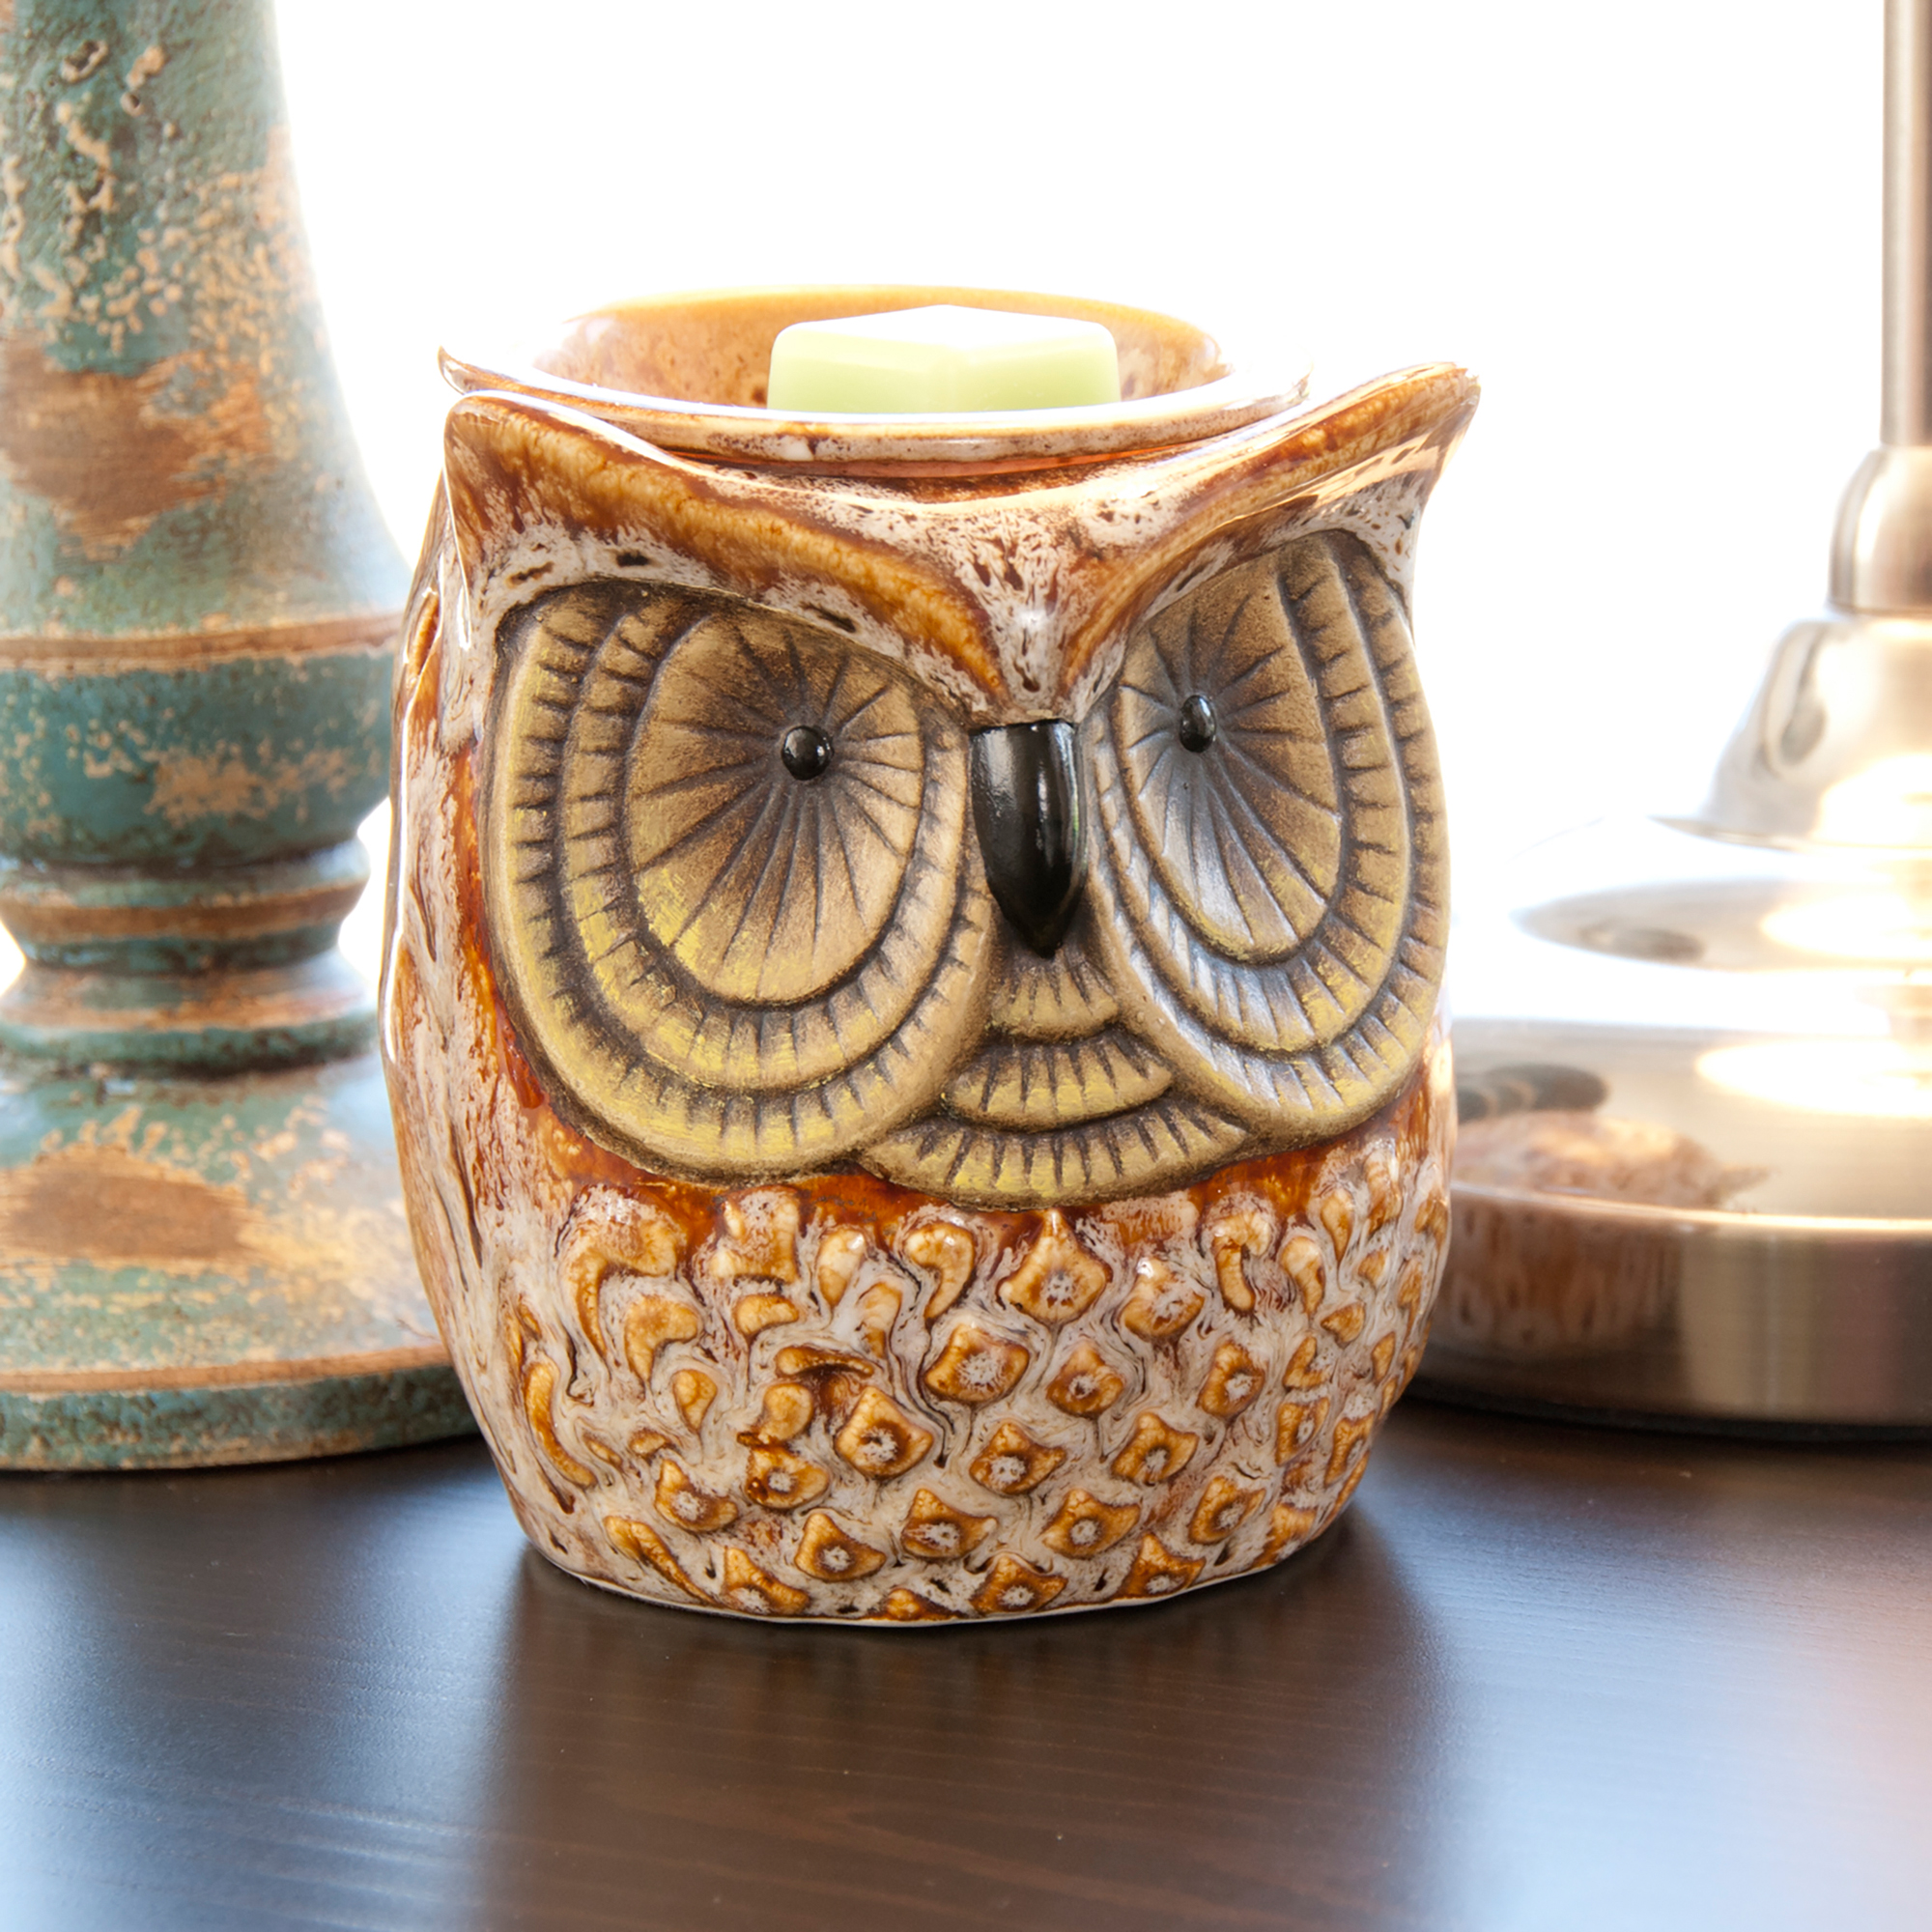 ScentSationals Spotted Owl Full-Size Scented Wax Warmer